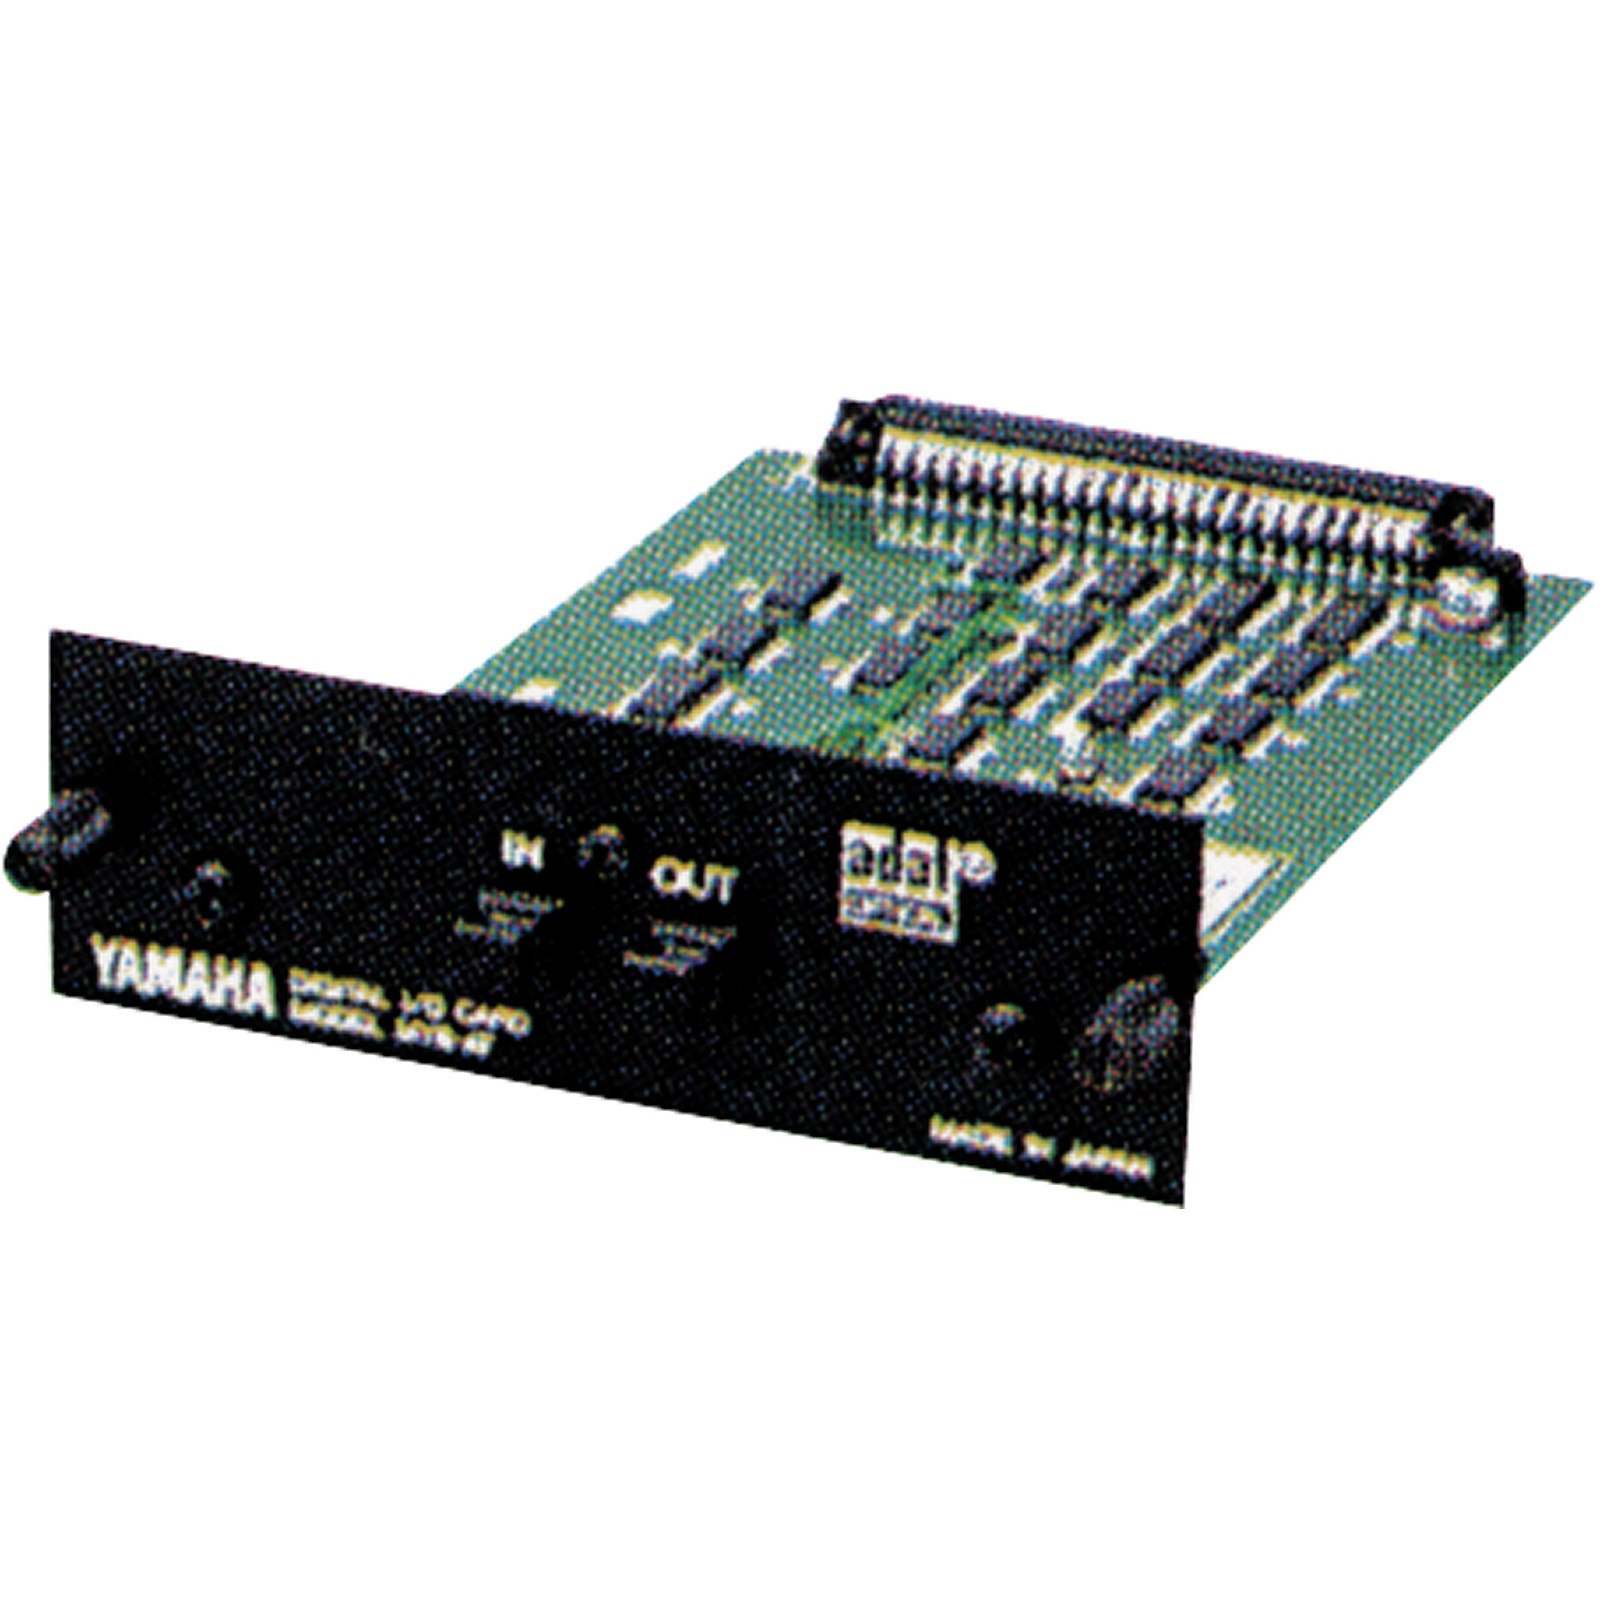 Open Box Yamaha MY8AT 8-Channel Digital I/O ADAT Card for 01V